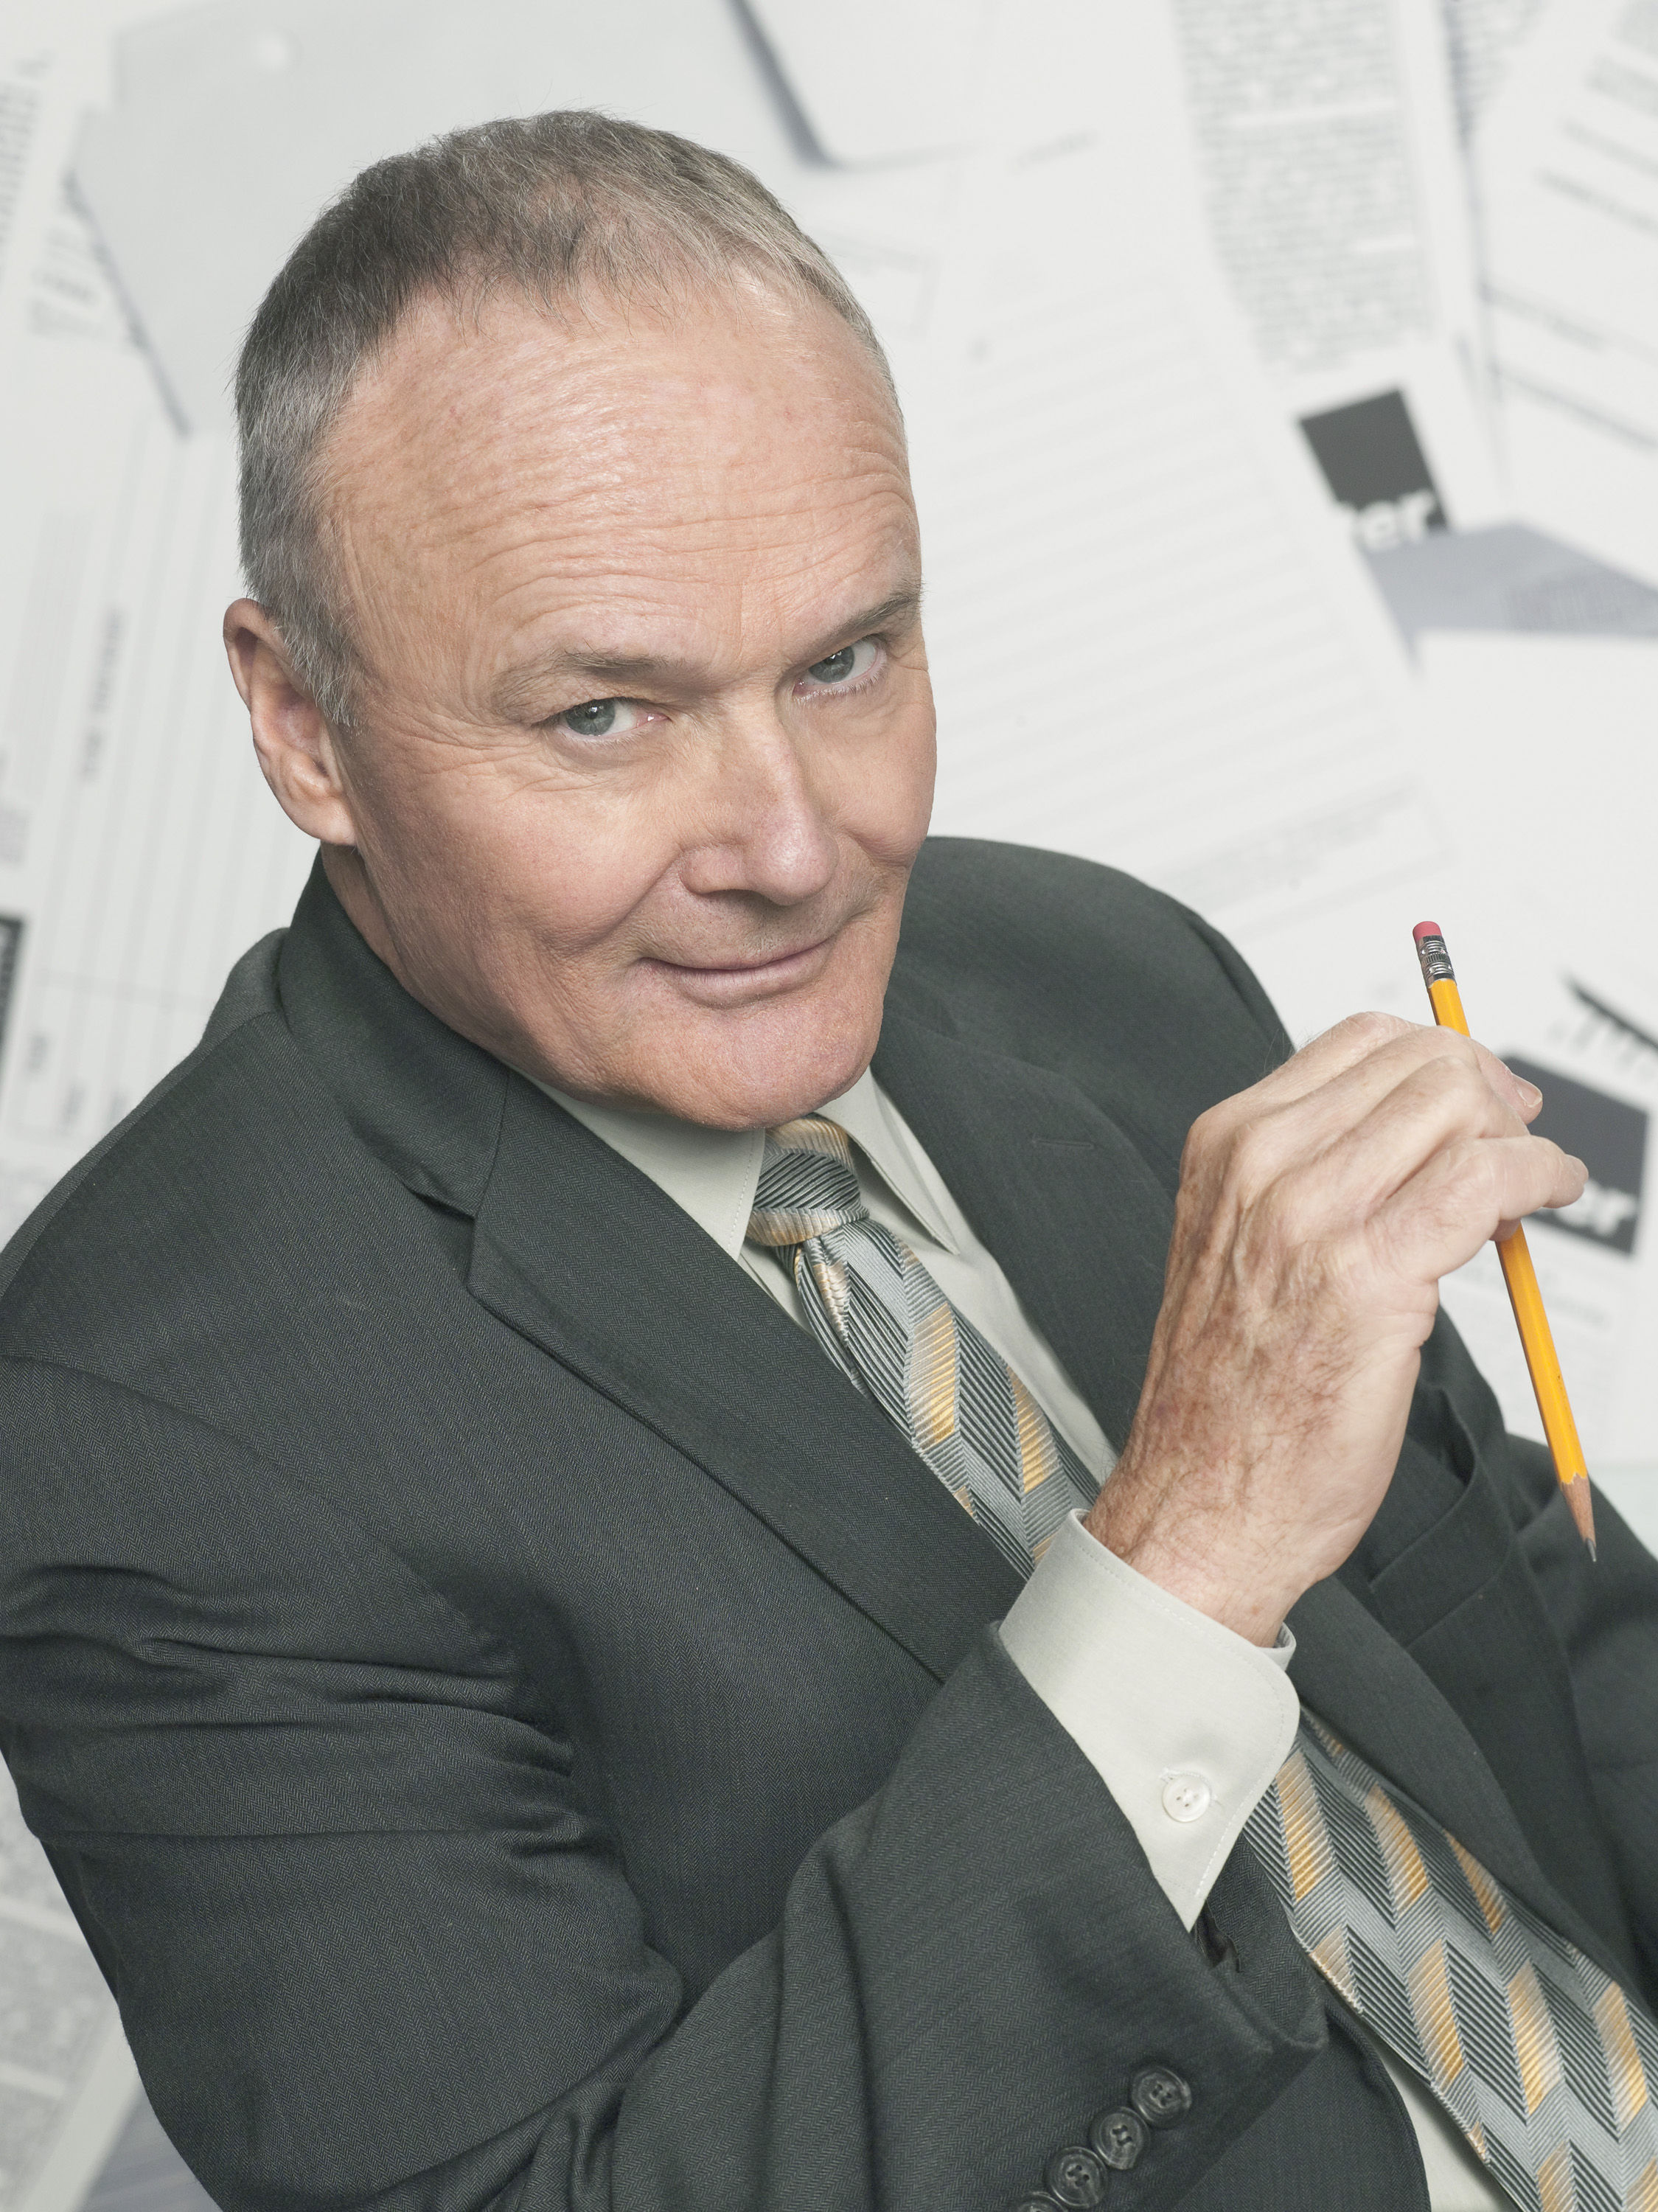 creed bratton all the faces